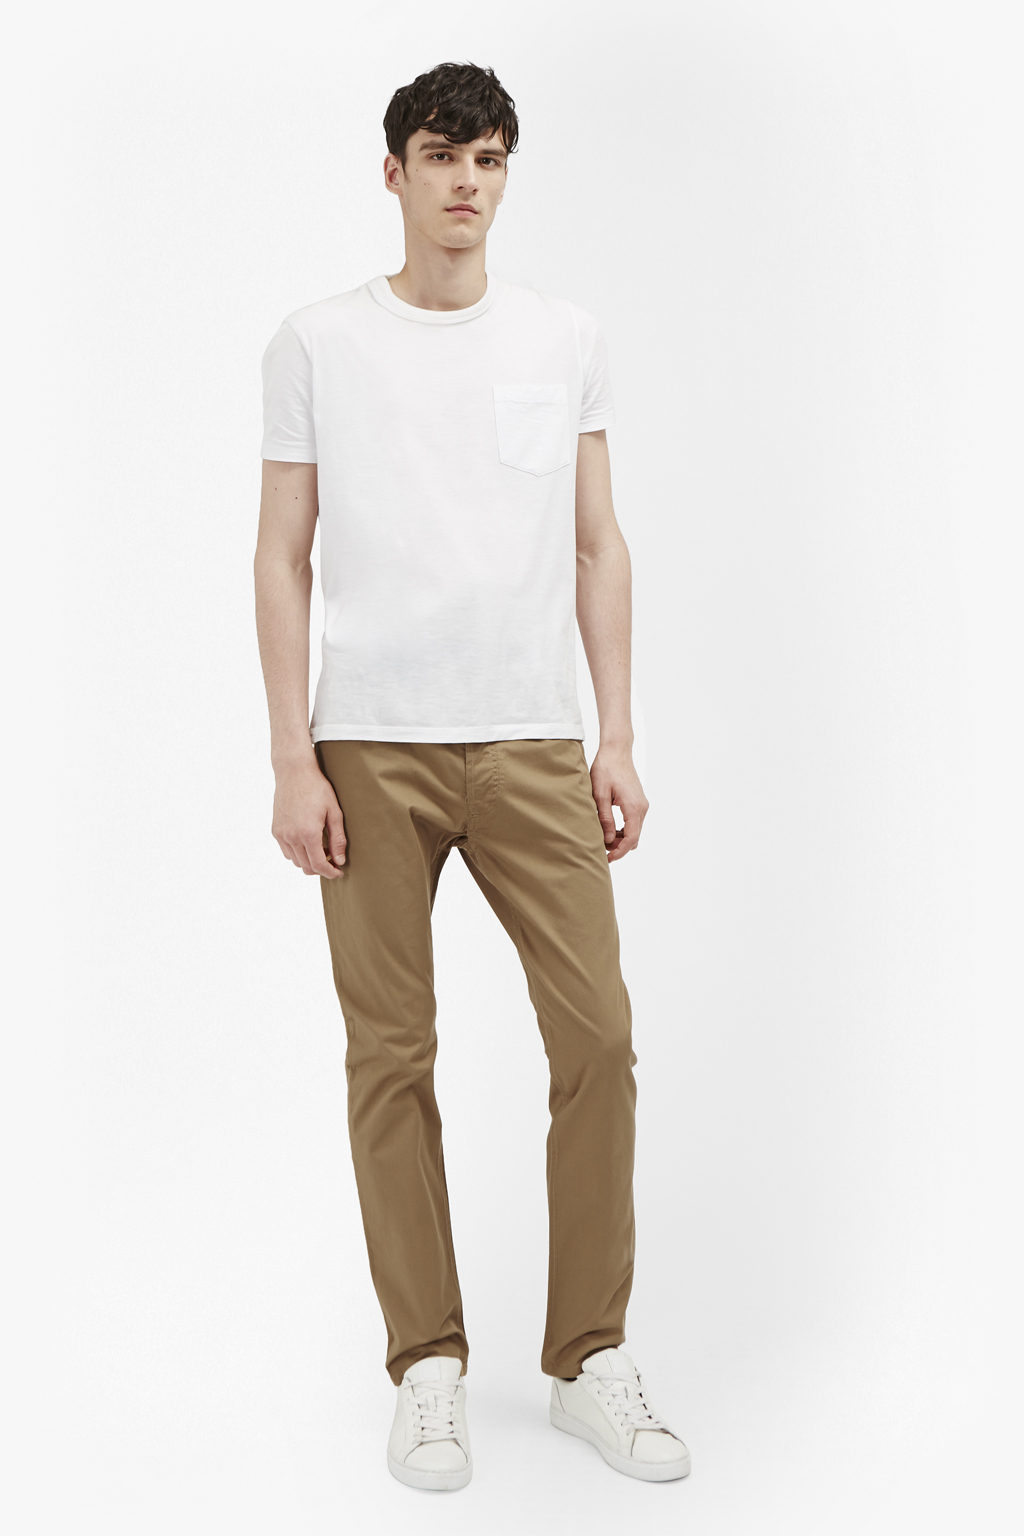 MENS TROUSER CHINO FRENCH CONNECTION IN CAMEL /& APPLE BUTTER COLOUR RRP £55.00